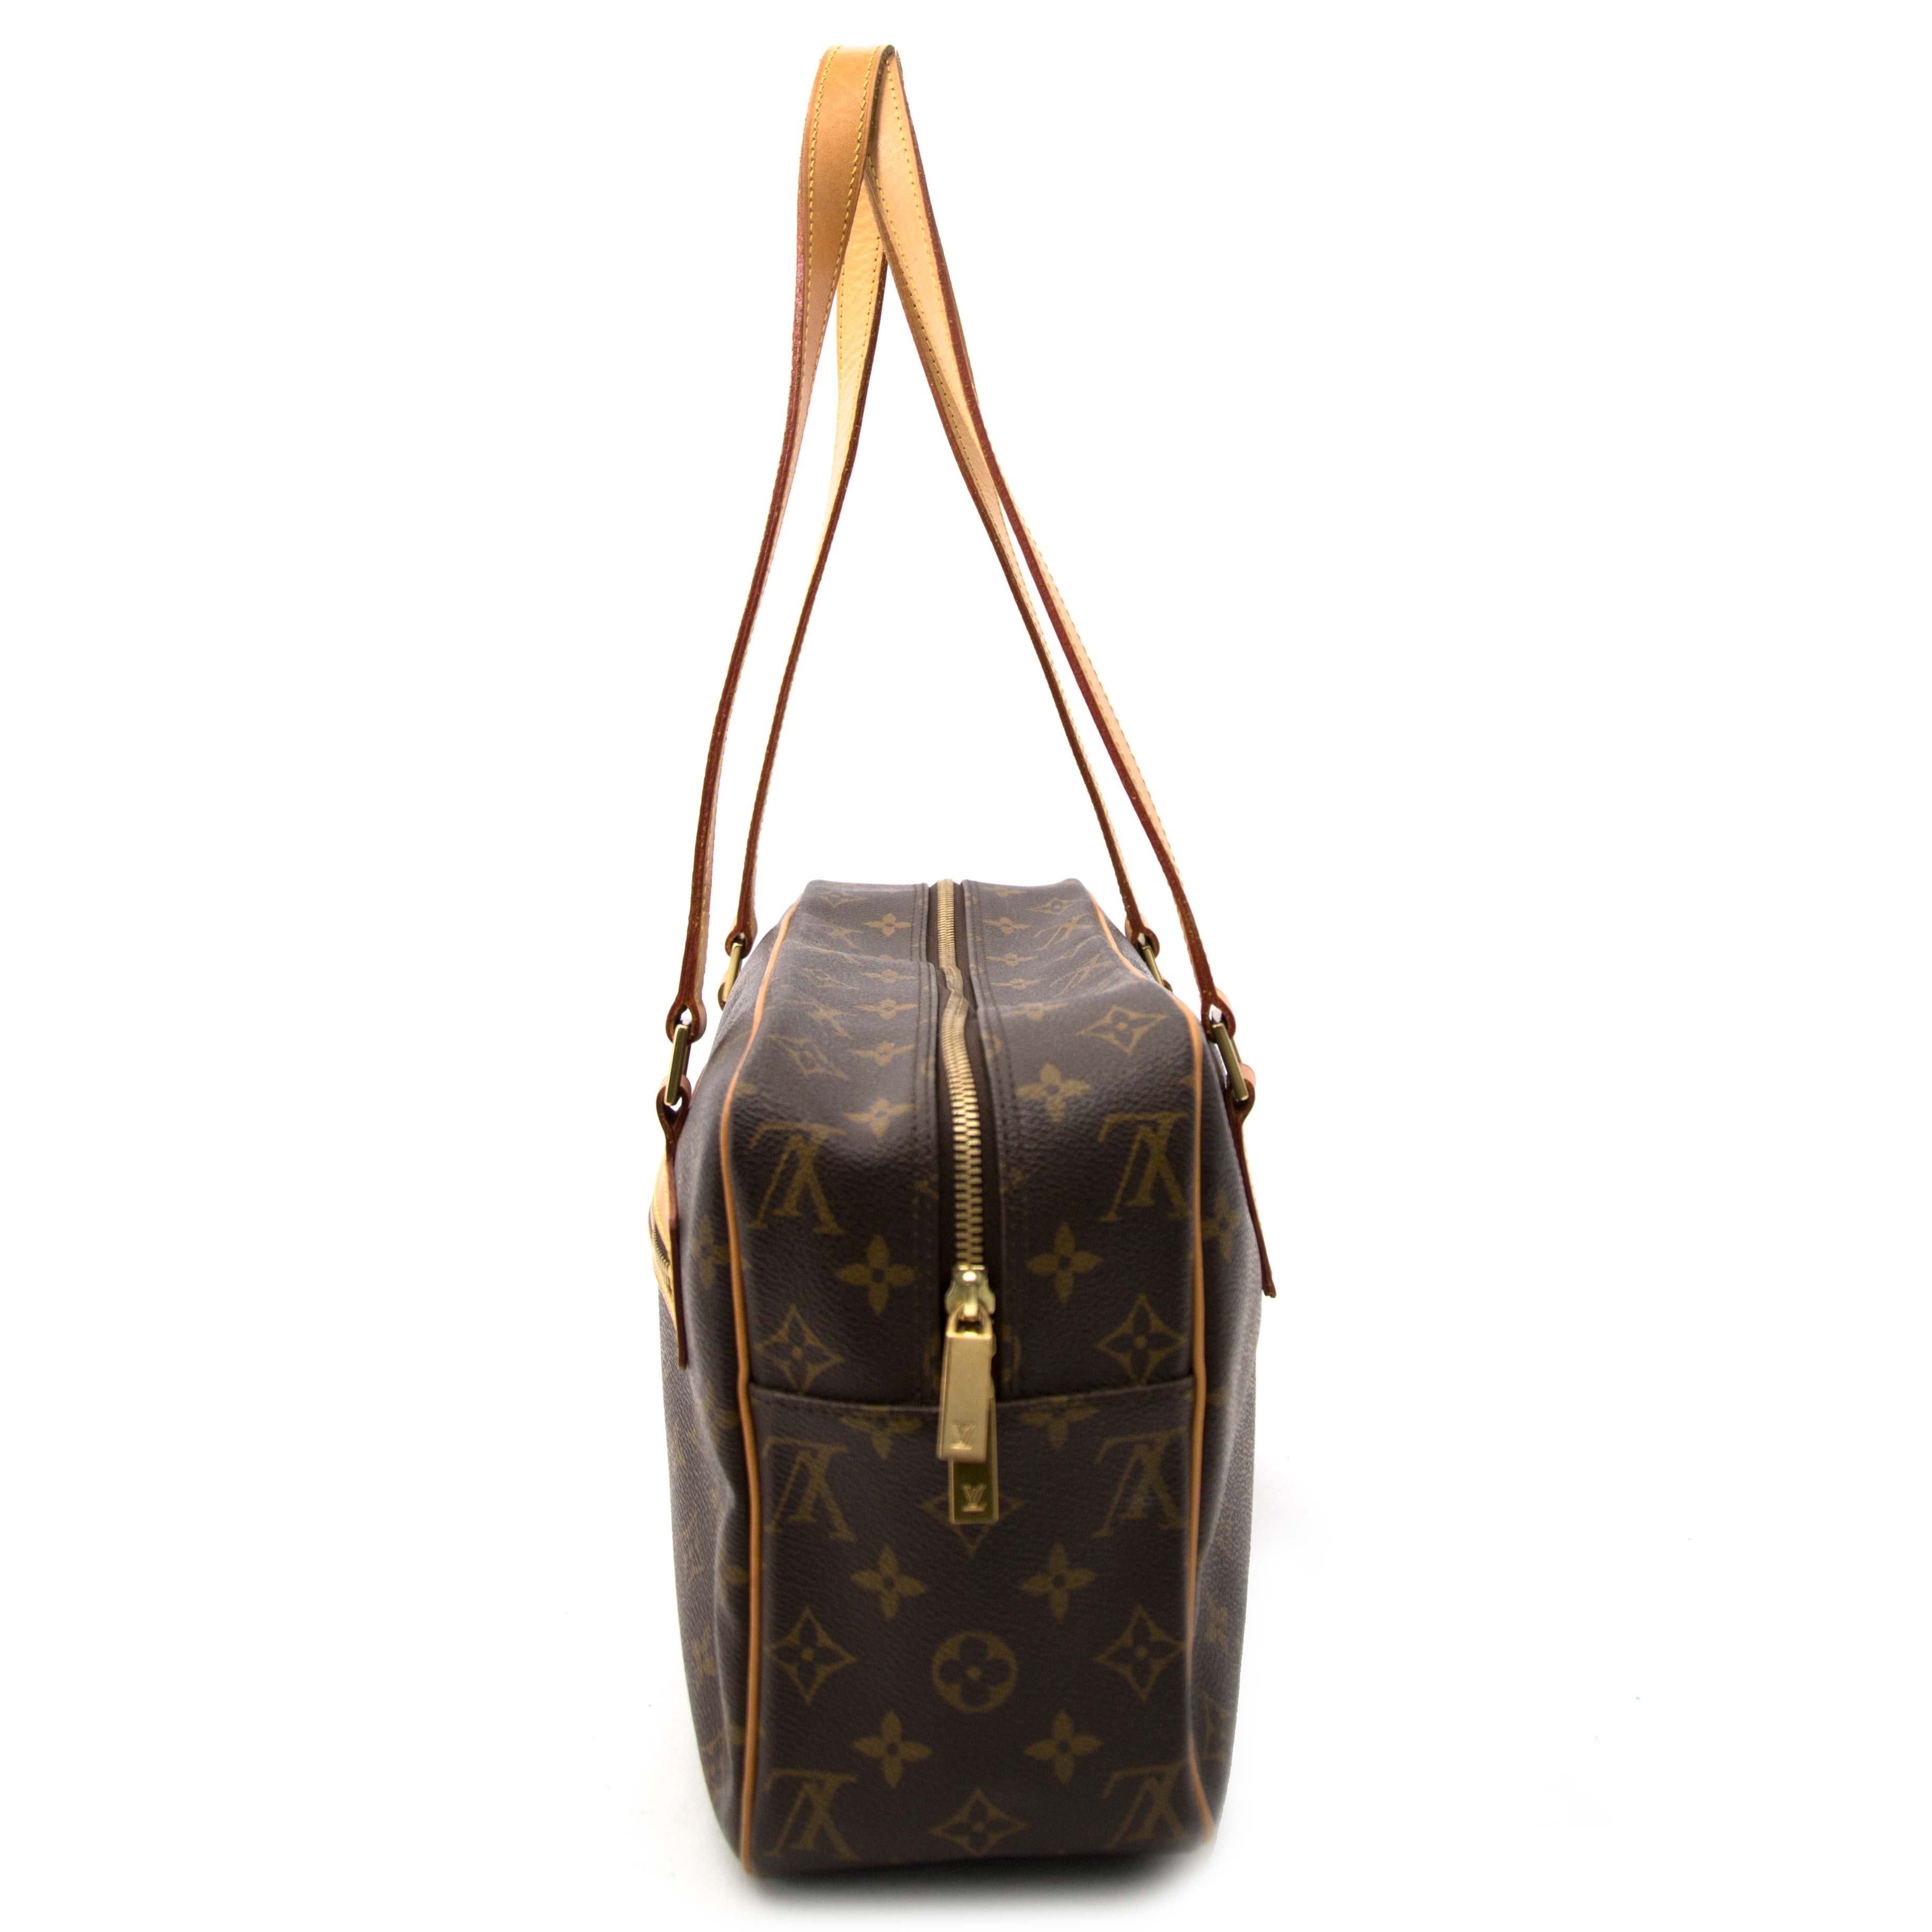 859a3f1d4141 Labellov Monogram Madness - Edits ○ Buy and Sell Authentic Luxury